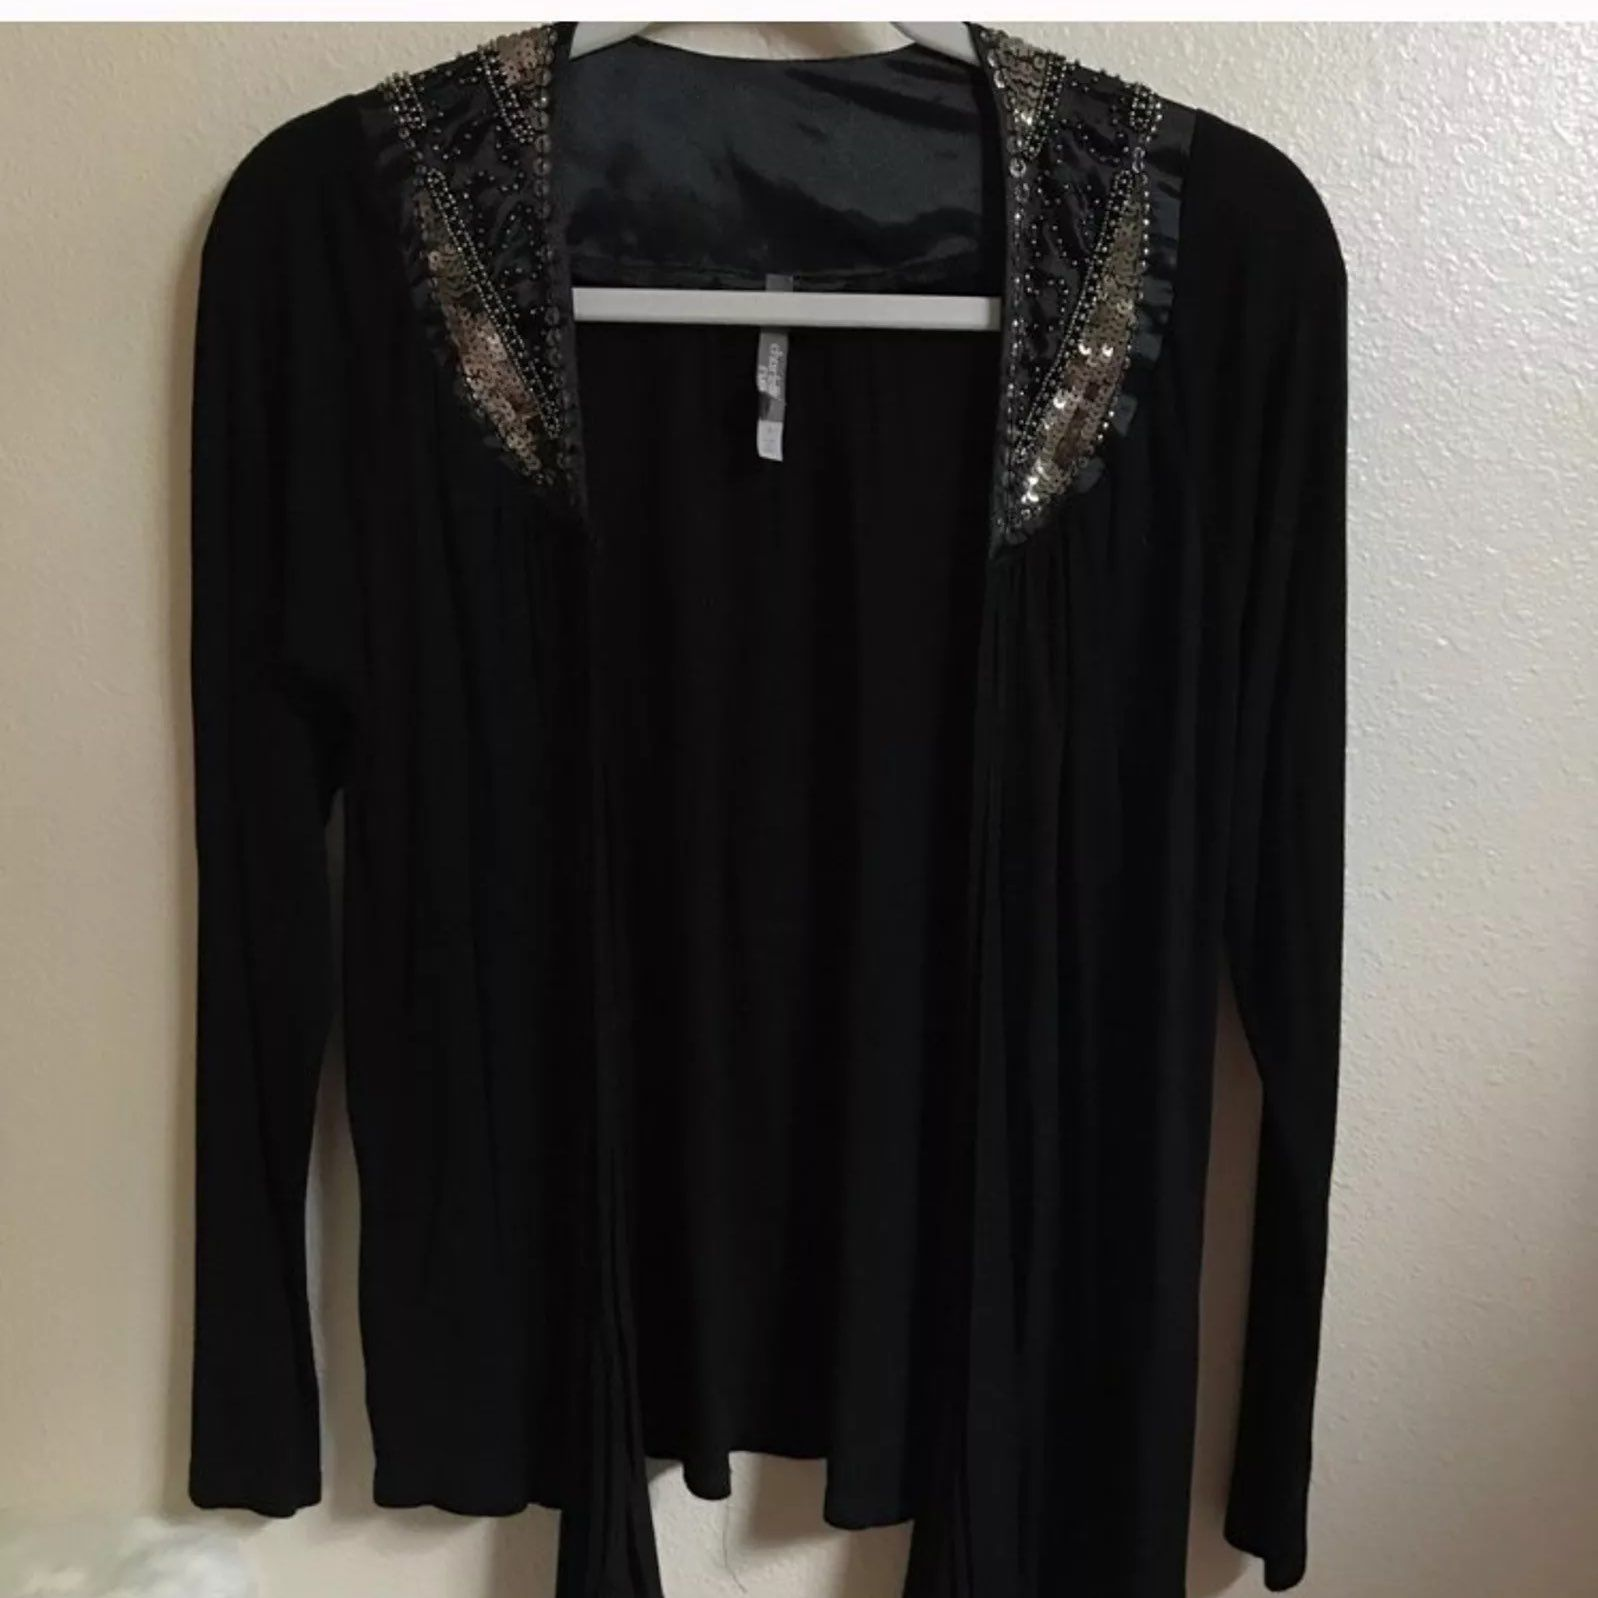 Black Cardigan With Sequins - Mercari: BUY & SELL THINGS YOU LOVE